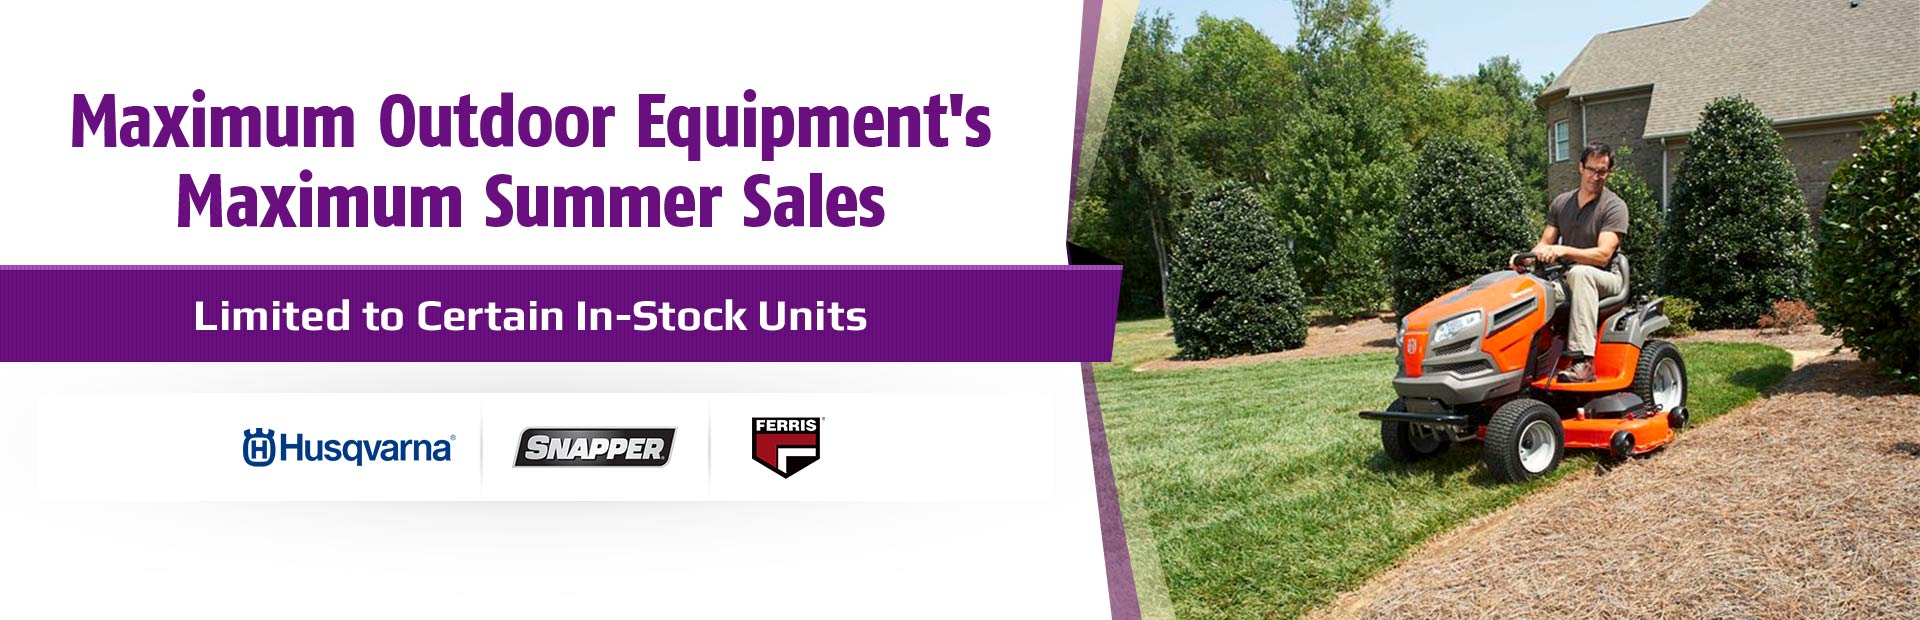 Join us for Maximum Outdoor Equipment's Maximum Spring Sales!